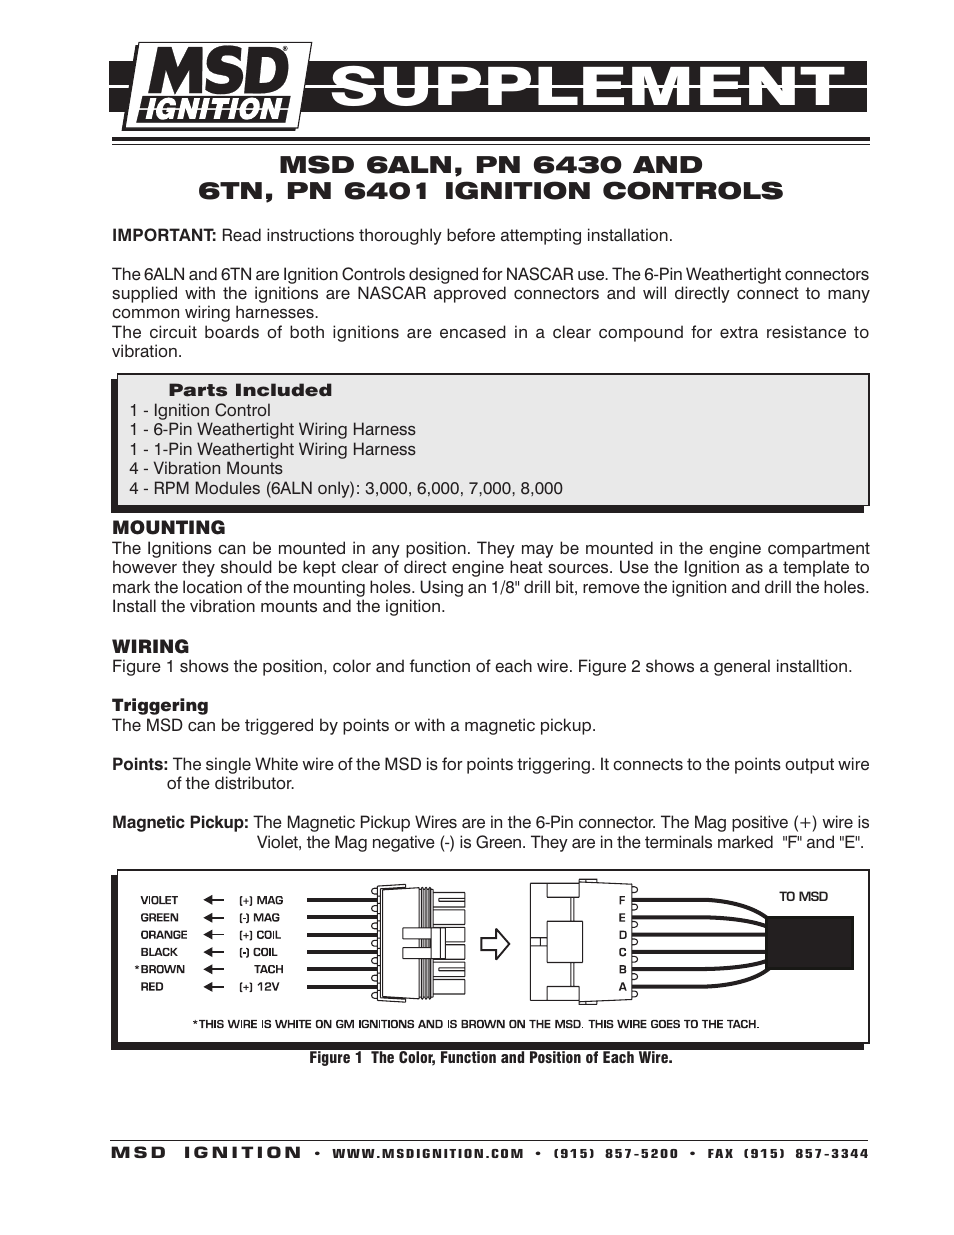 msd 6430 6aln ignition control supplement page1 tg66m3170c00 wiring diagram,m \u2022 indy500 co  at alyssarenee.co